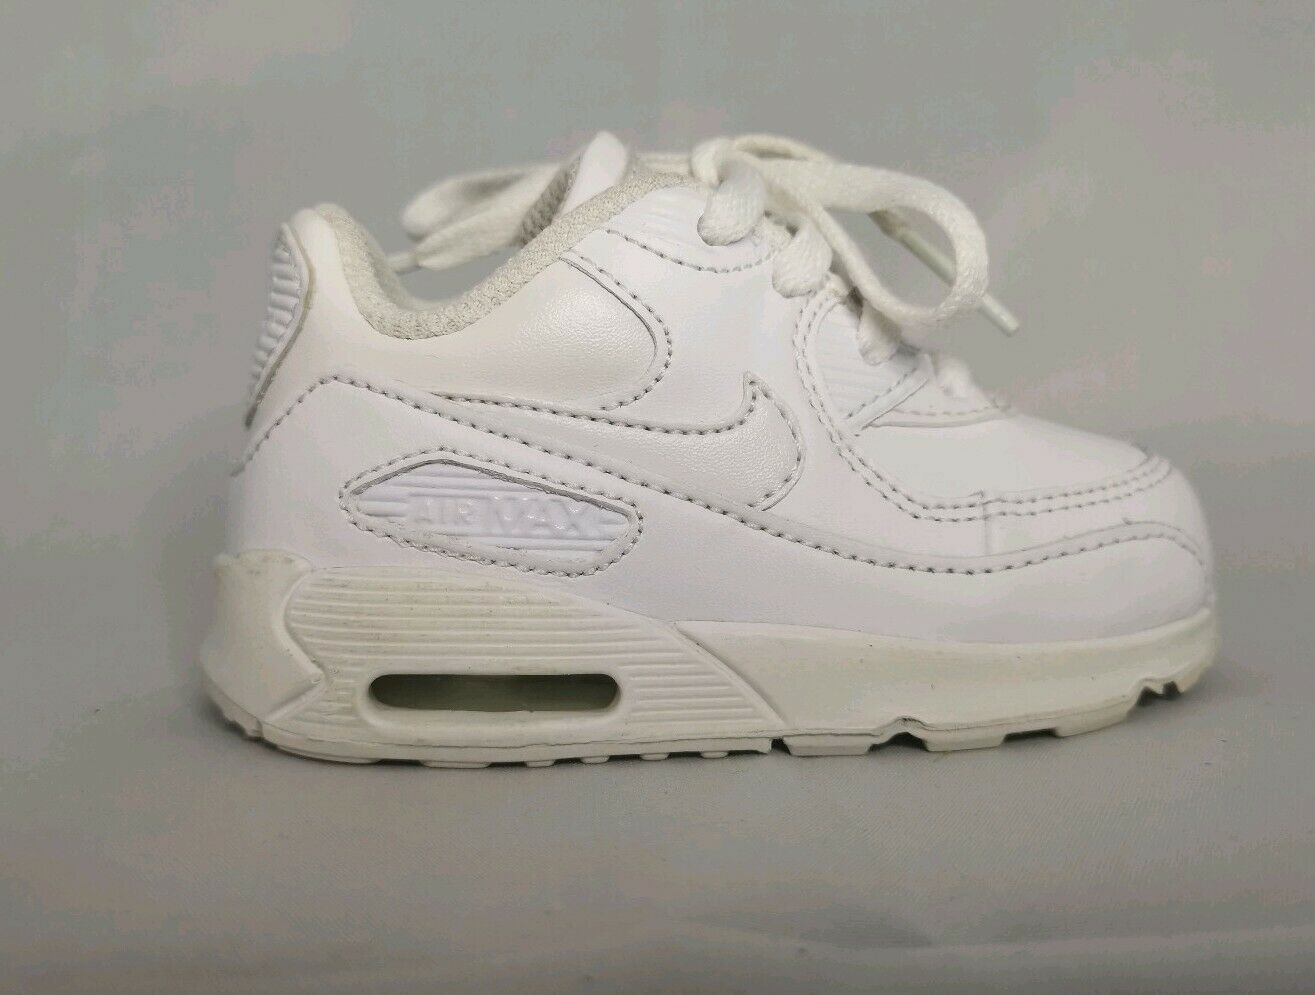 Kids Baby Nike Air Max 90 White Shoes Size 4C Toddler